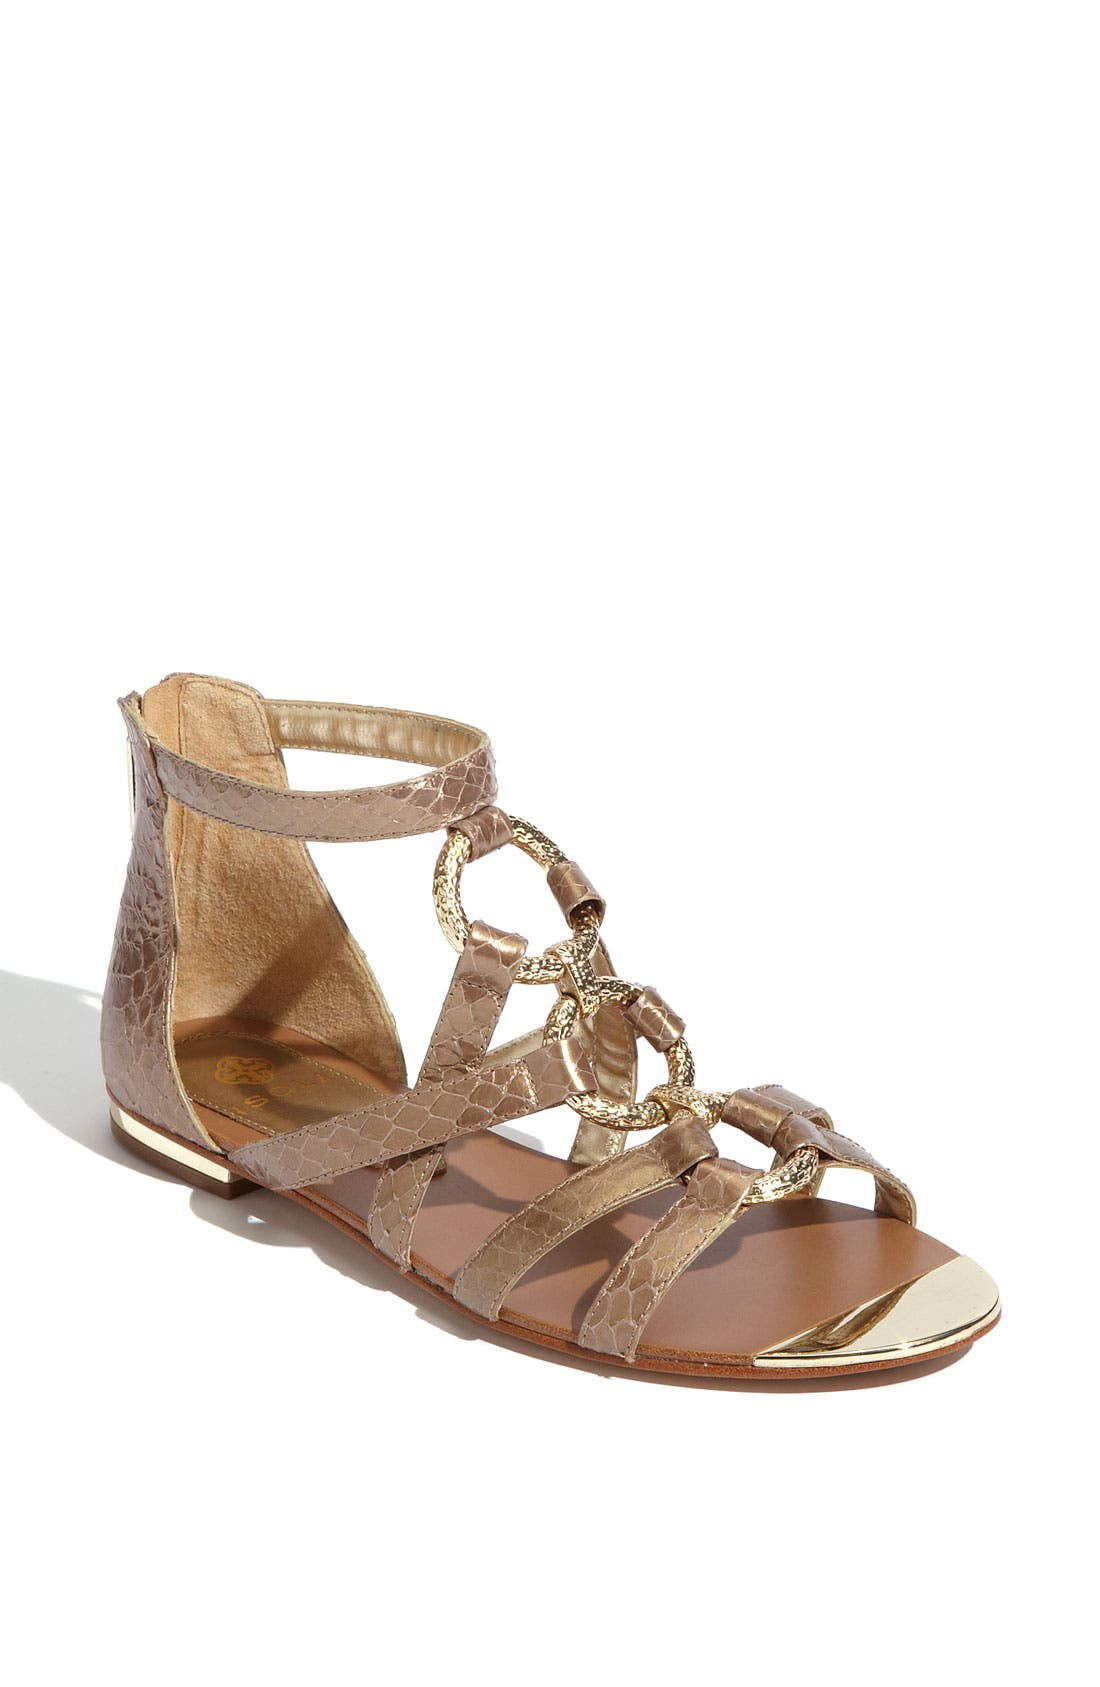 'Adriel' Flat Sandal,                         Main,                         color, Gold Snake